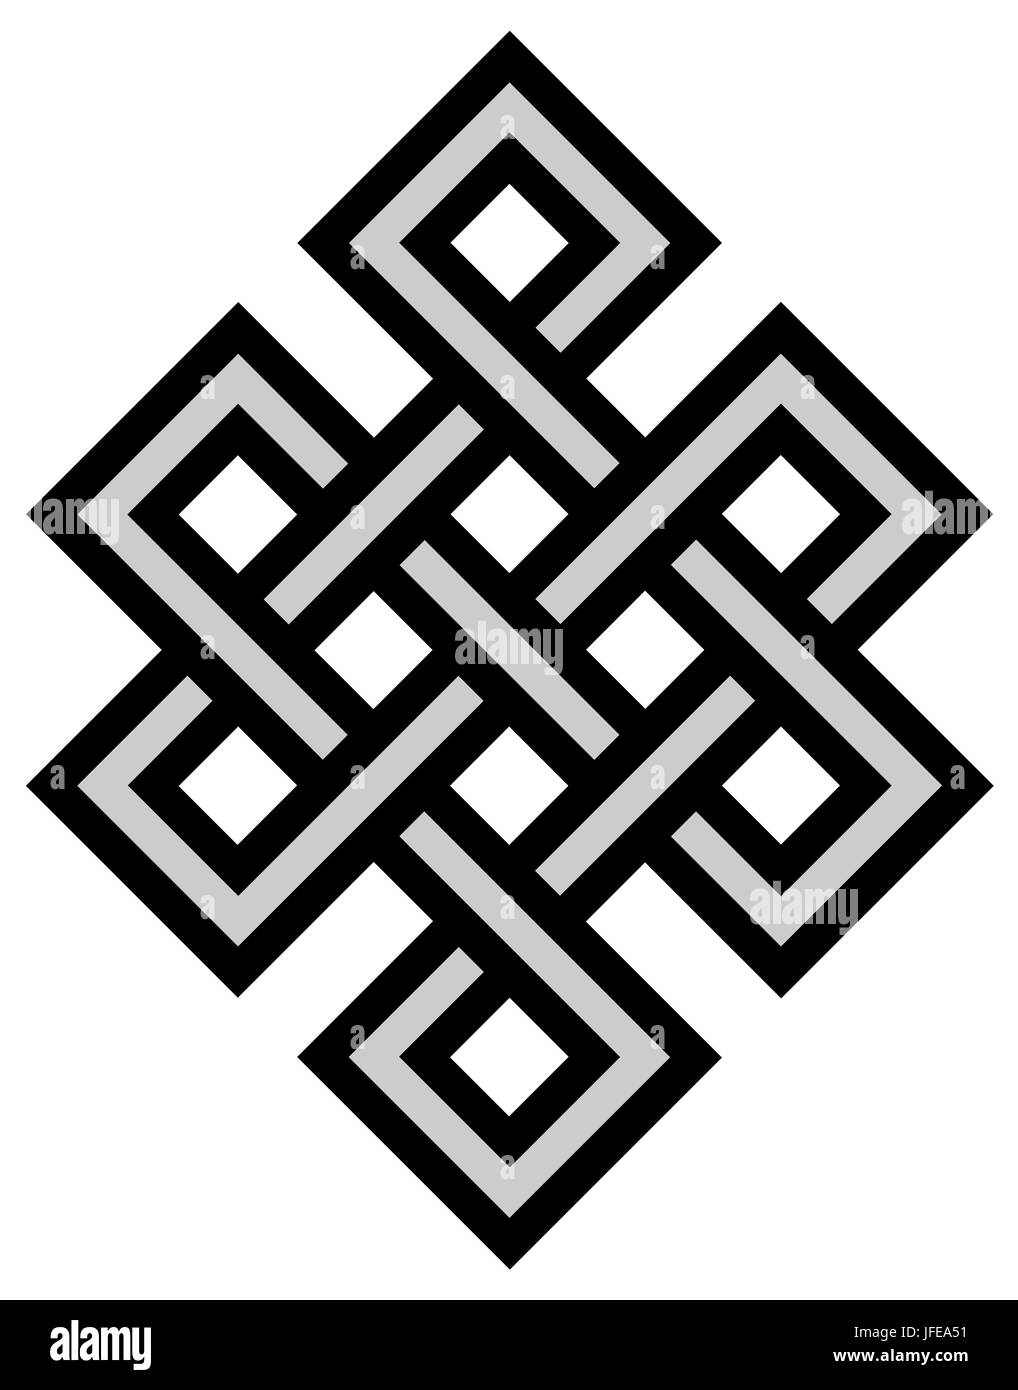 Tibetan Knot Symbol Stock Photo 147218093 Alamy